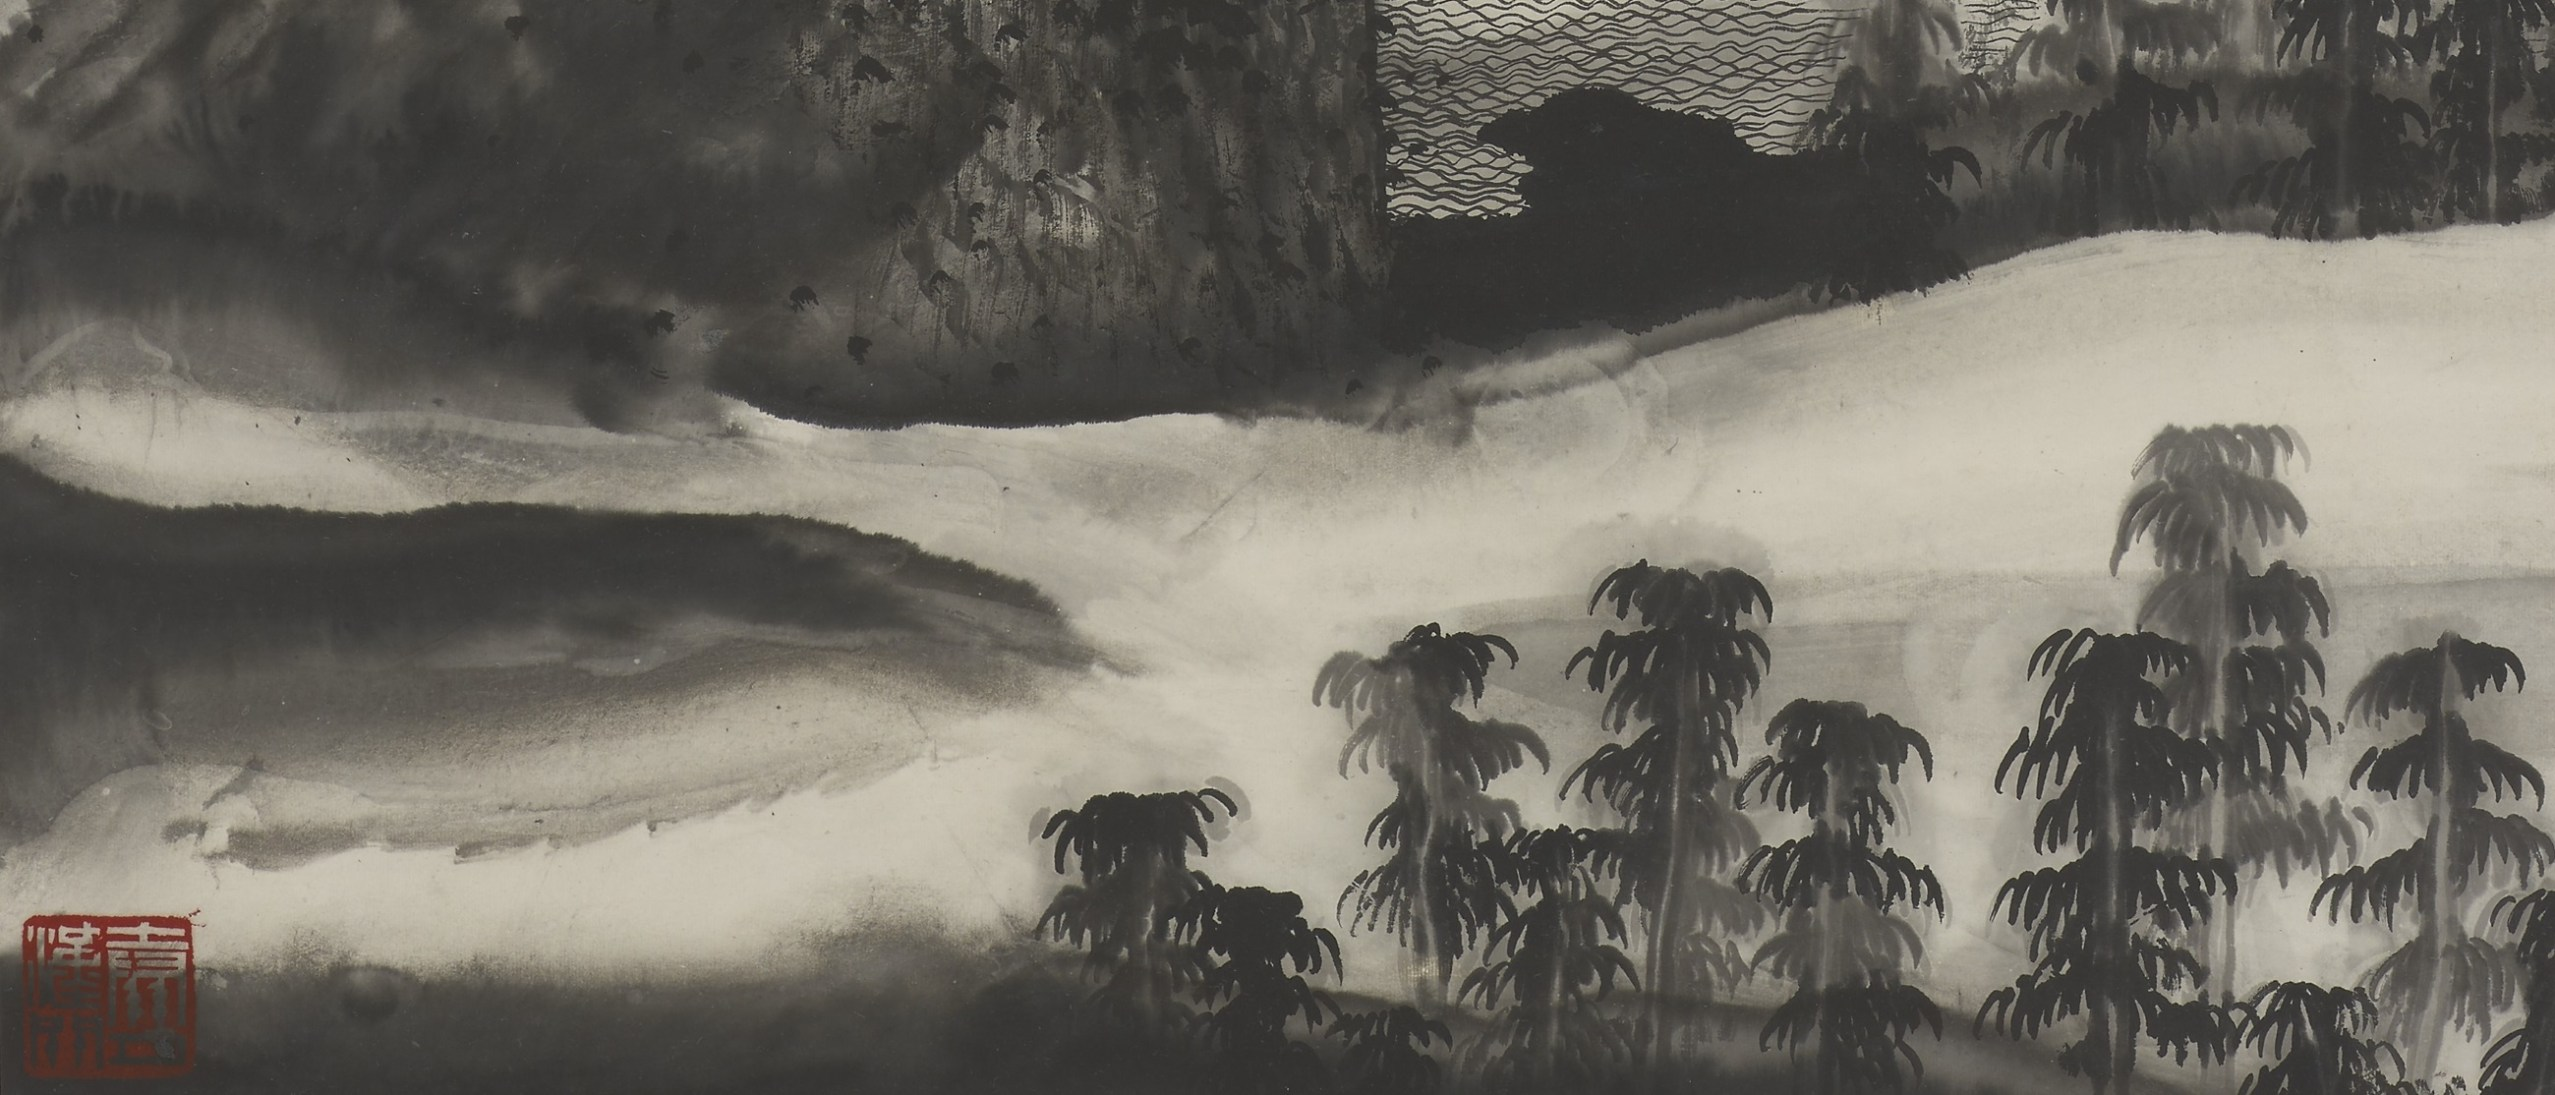 Detail photo of 現代 谷文達 《夜靜山空圖》 軸; Night is quiet and the mountains empty; Gu Wenda (b. 1955); China, Modern period, 1985; Hanging scroll; ink on paper; Gift of Ruth Kurzbauer in memory of Dr. Robert and Lisa Rales Kurzbauer and Dr. Marcus Jacobson; Arthur M. Sackler Gallery S2017.13